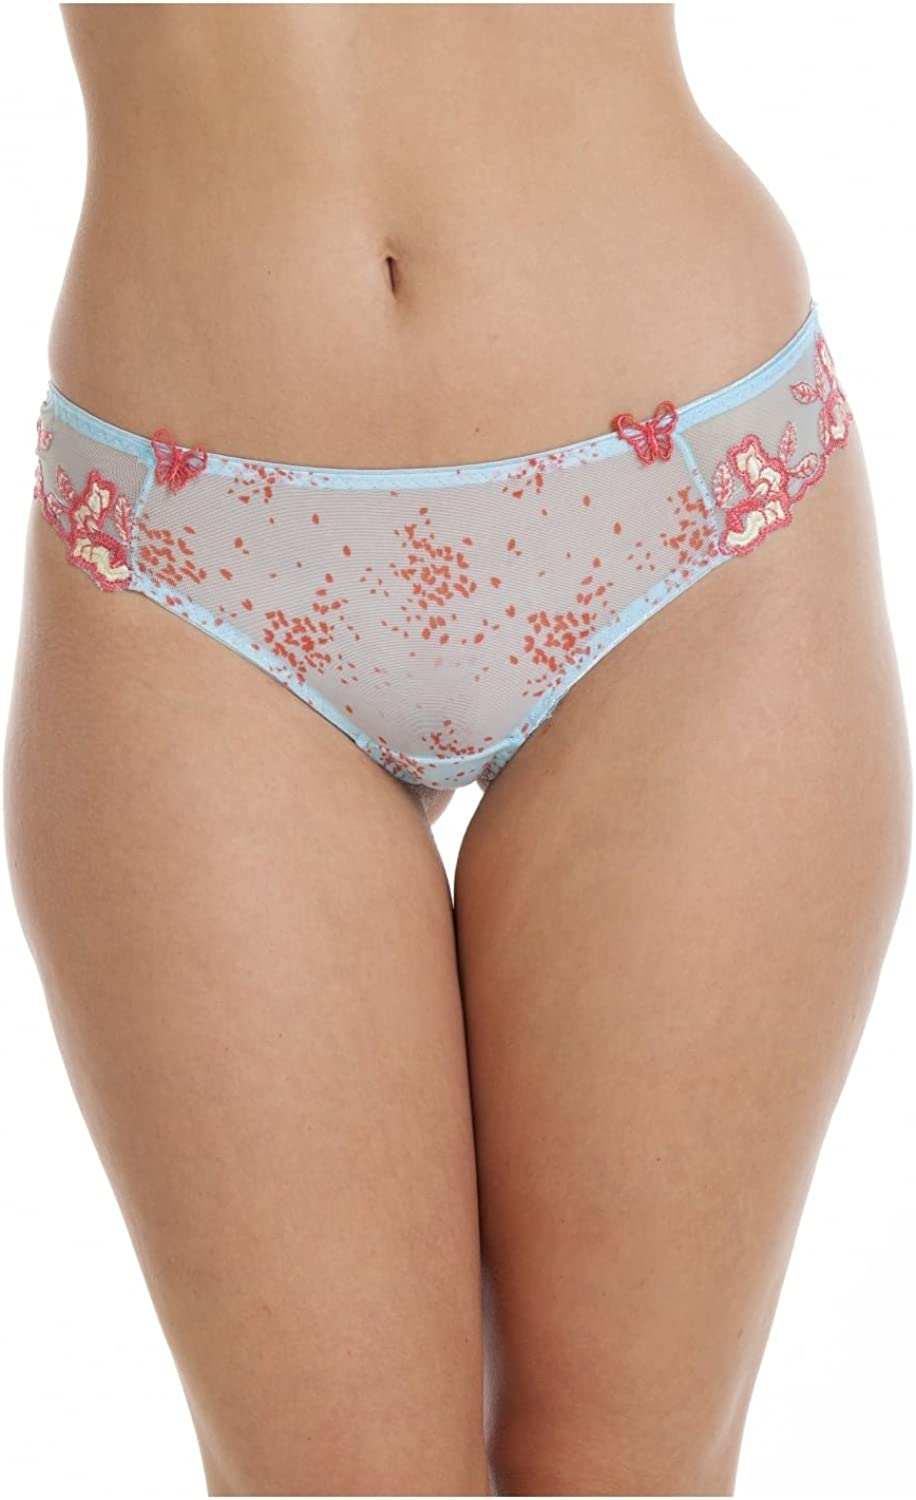 Camille Womens Ladies Sheer Mesh Laced Blue and Pink Underwear Thong Sizes 8-18